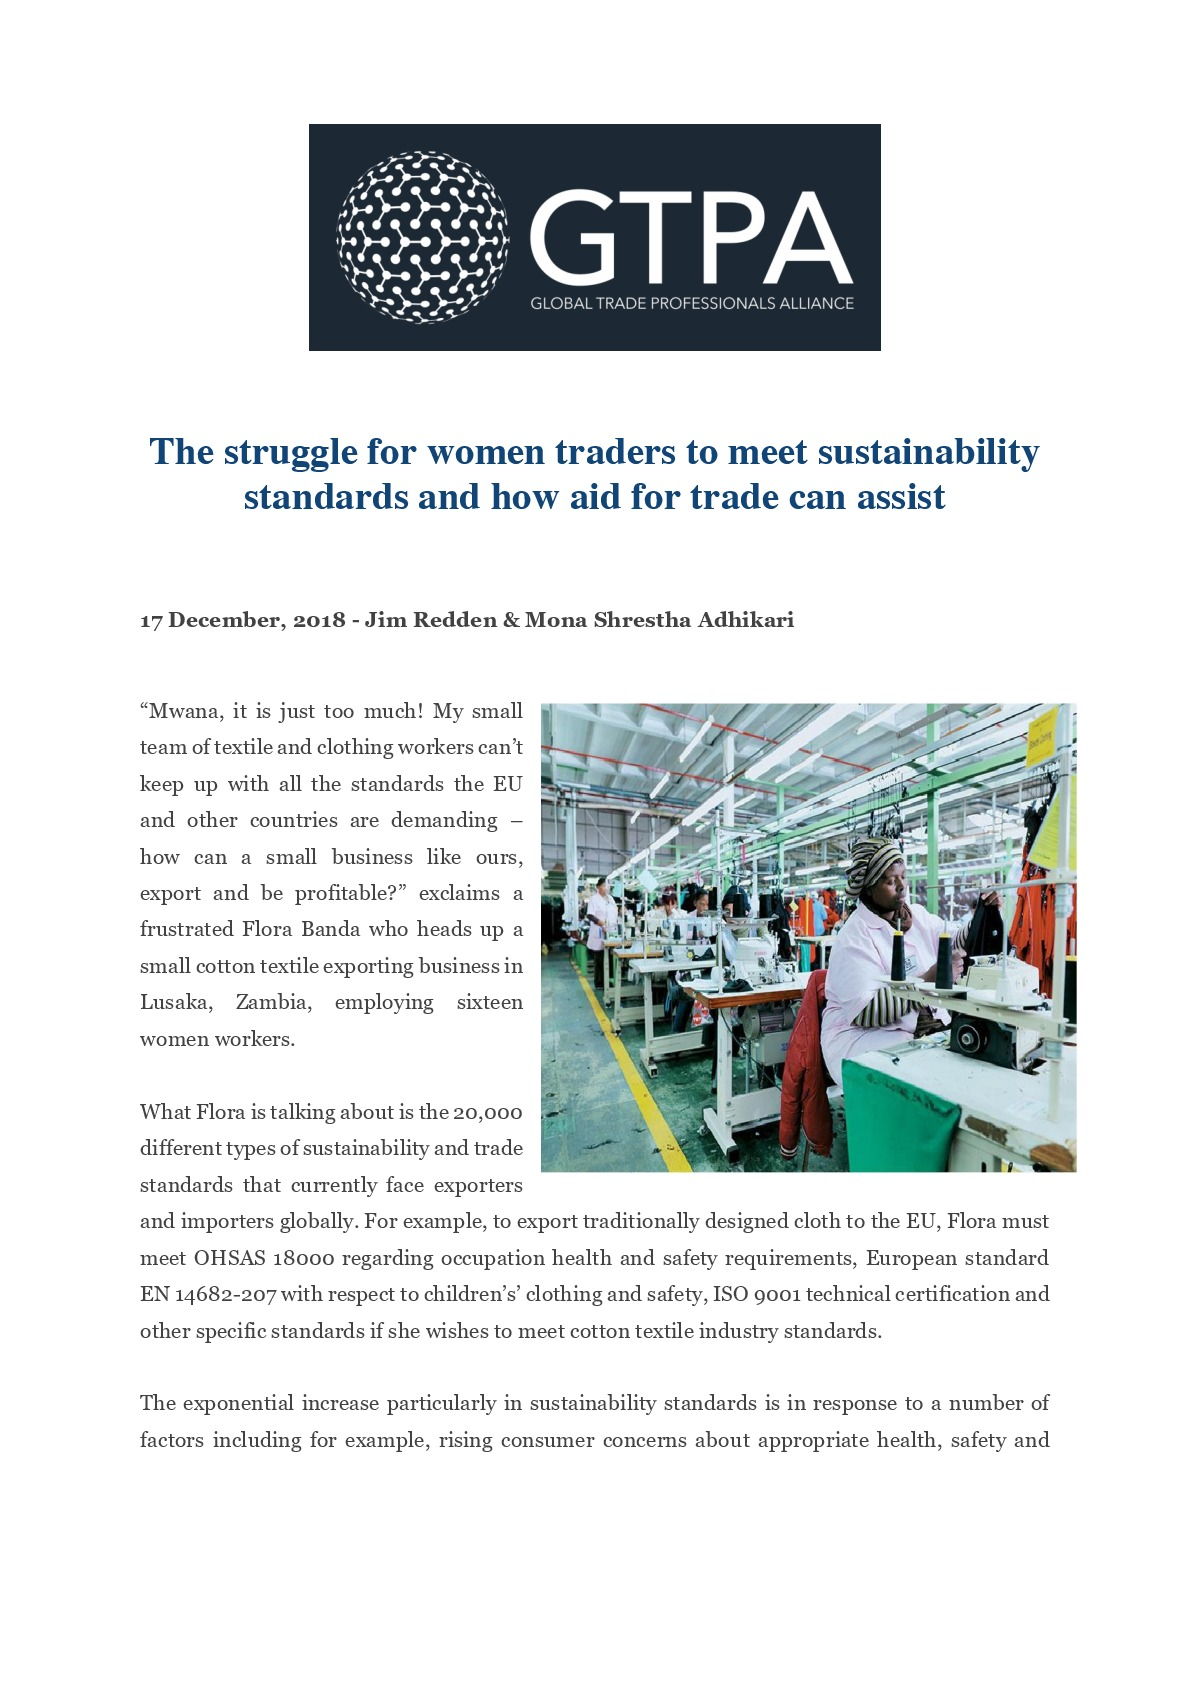 The Struggle for Women Traders